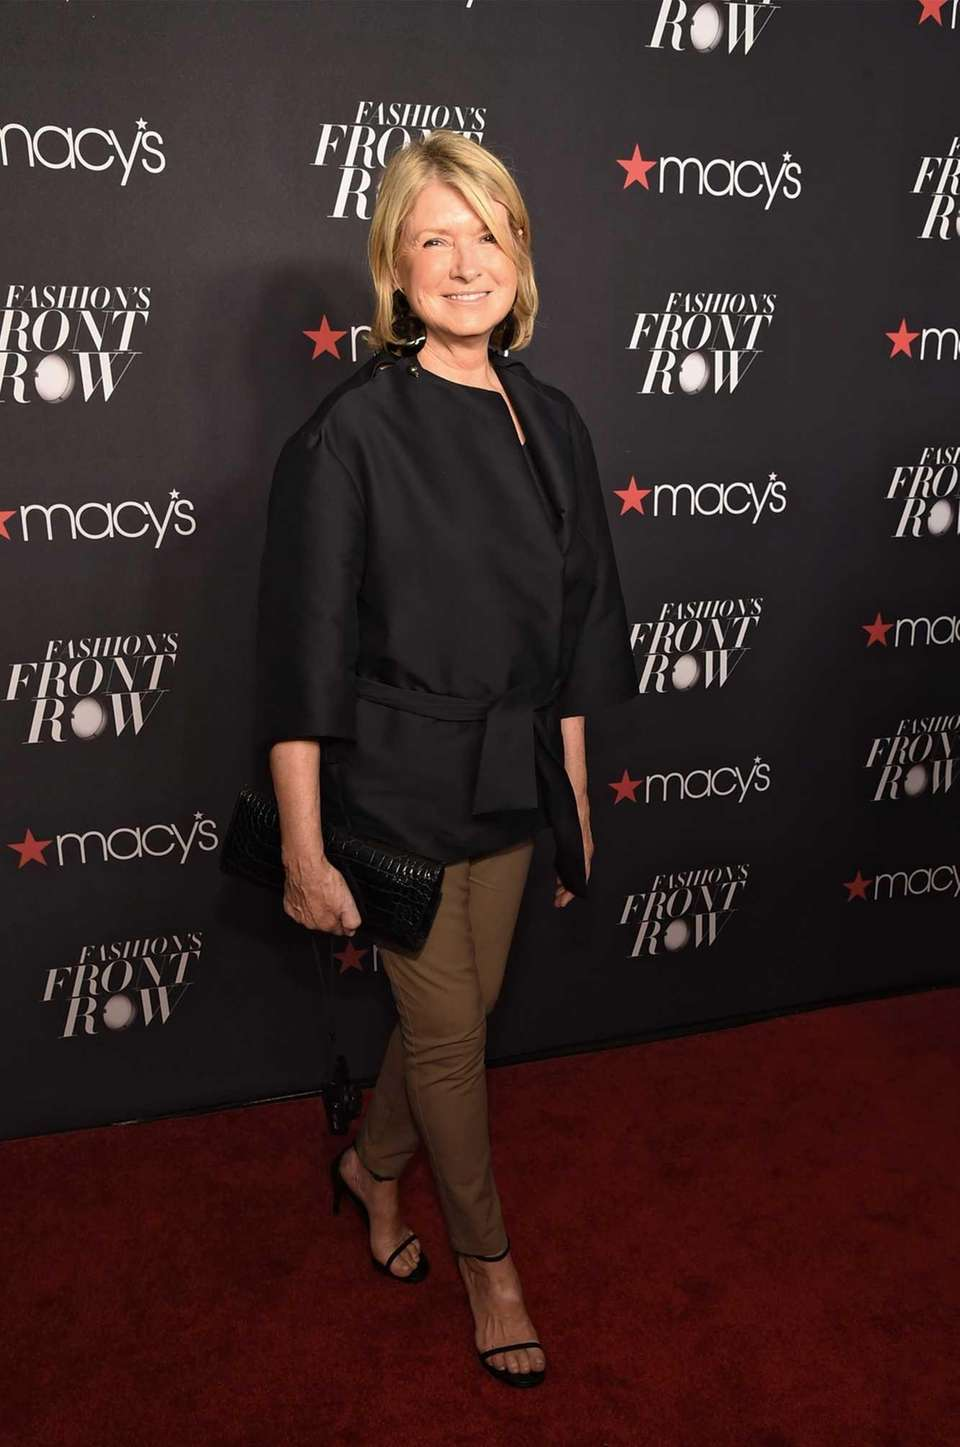 Martha Stewart appears at Macy's Presents Fashion's Front